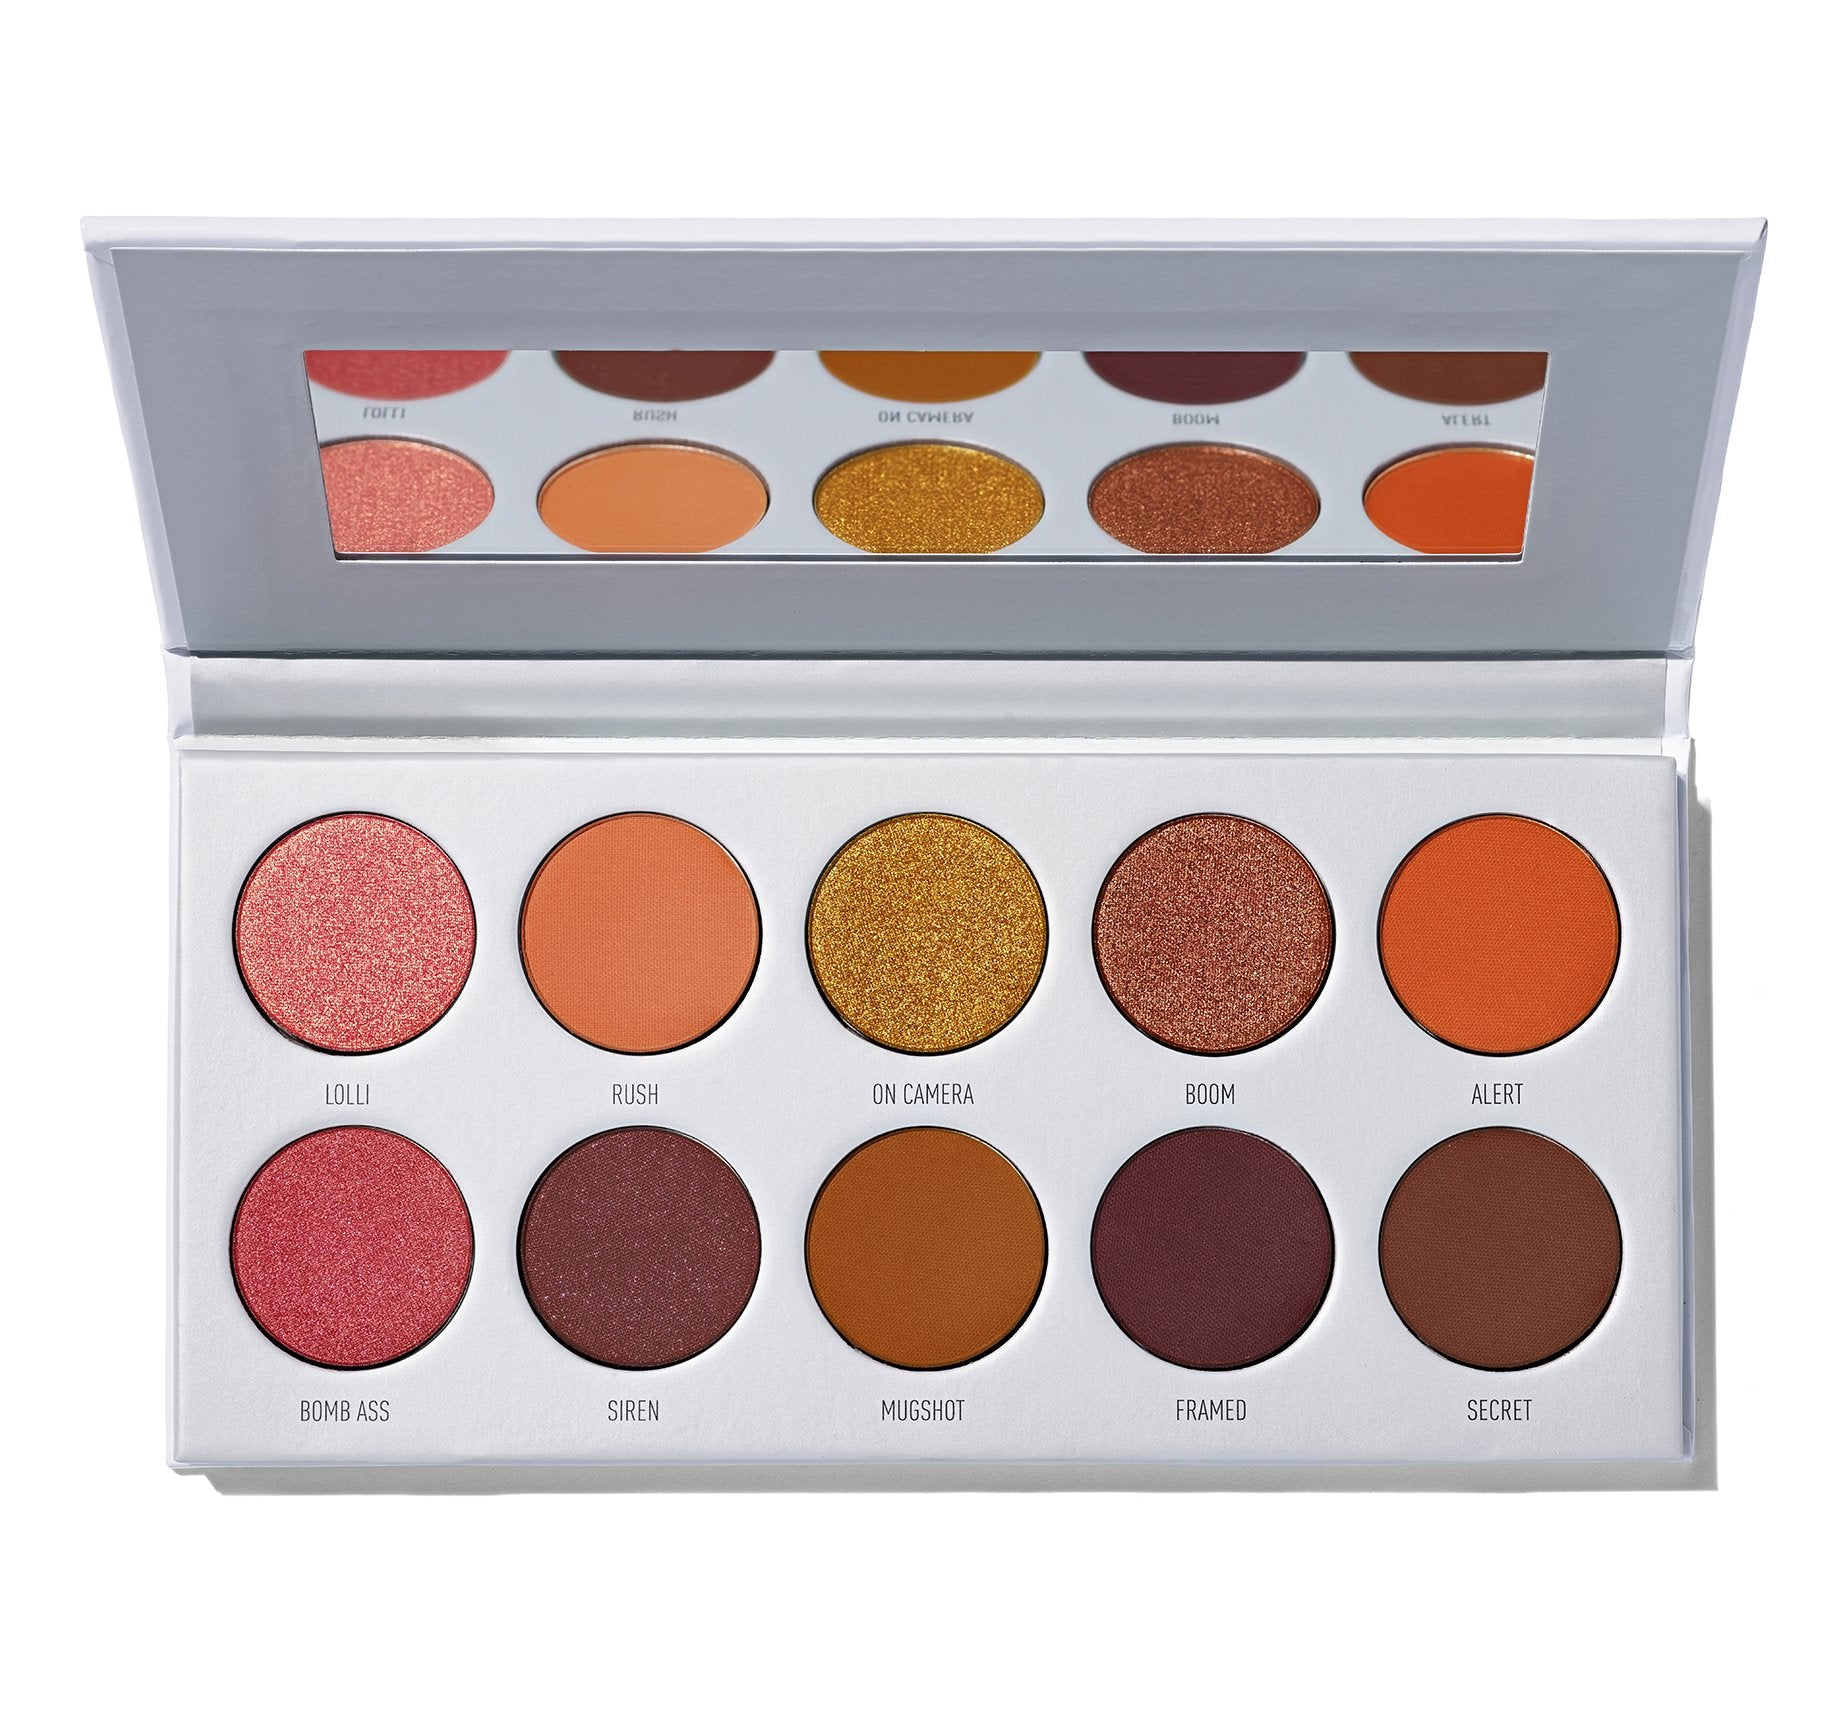 Morphe - Morphe x Jaclyn Hill Ring the Alarm Eyeshadow Palette